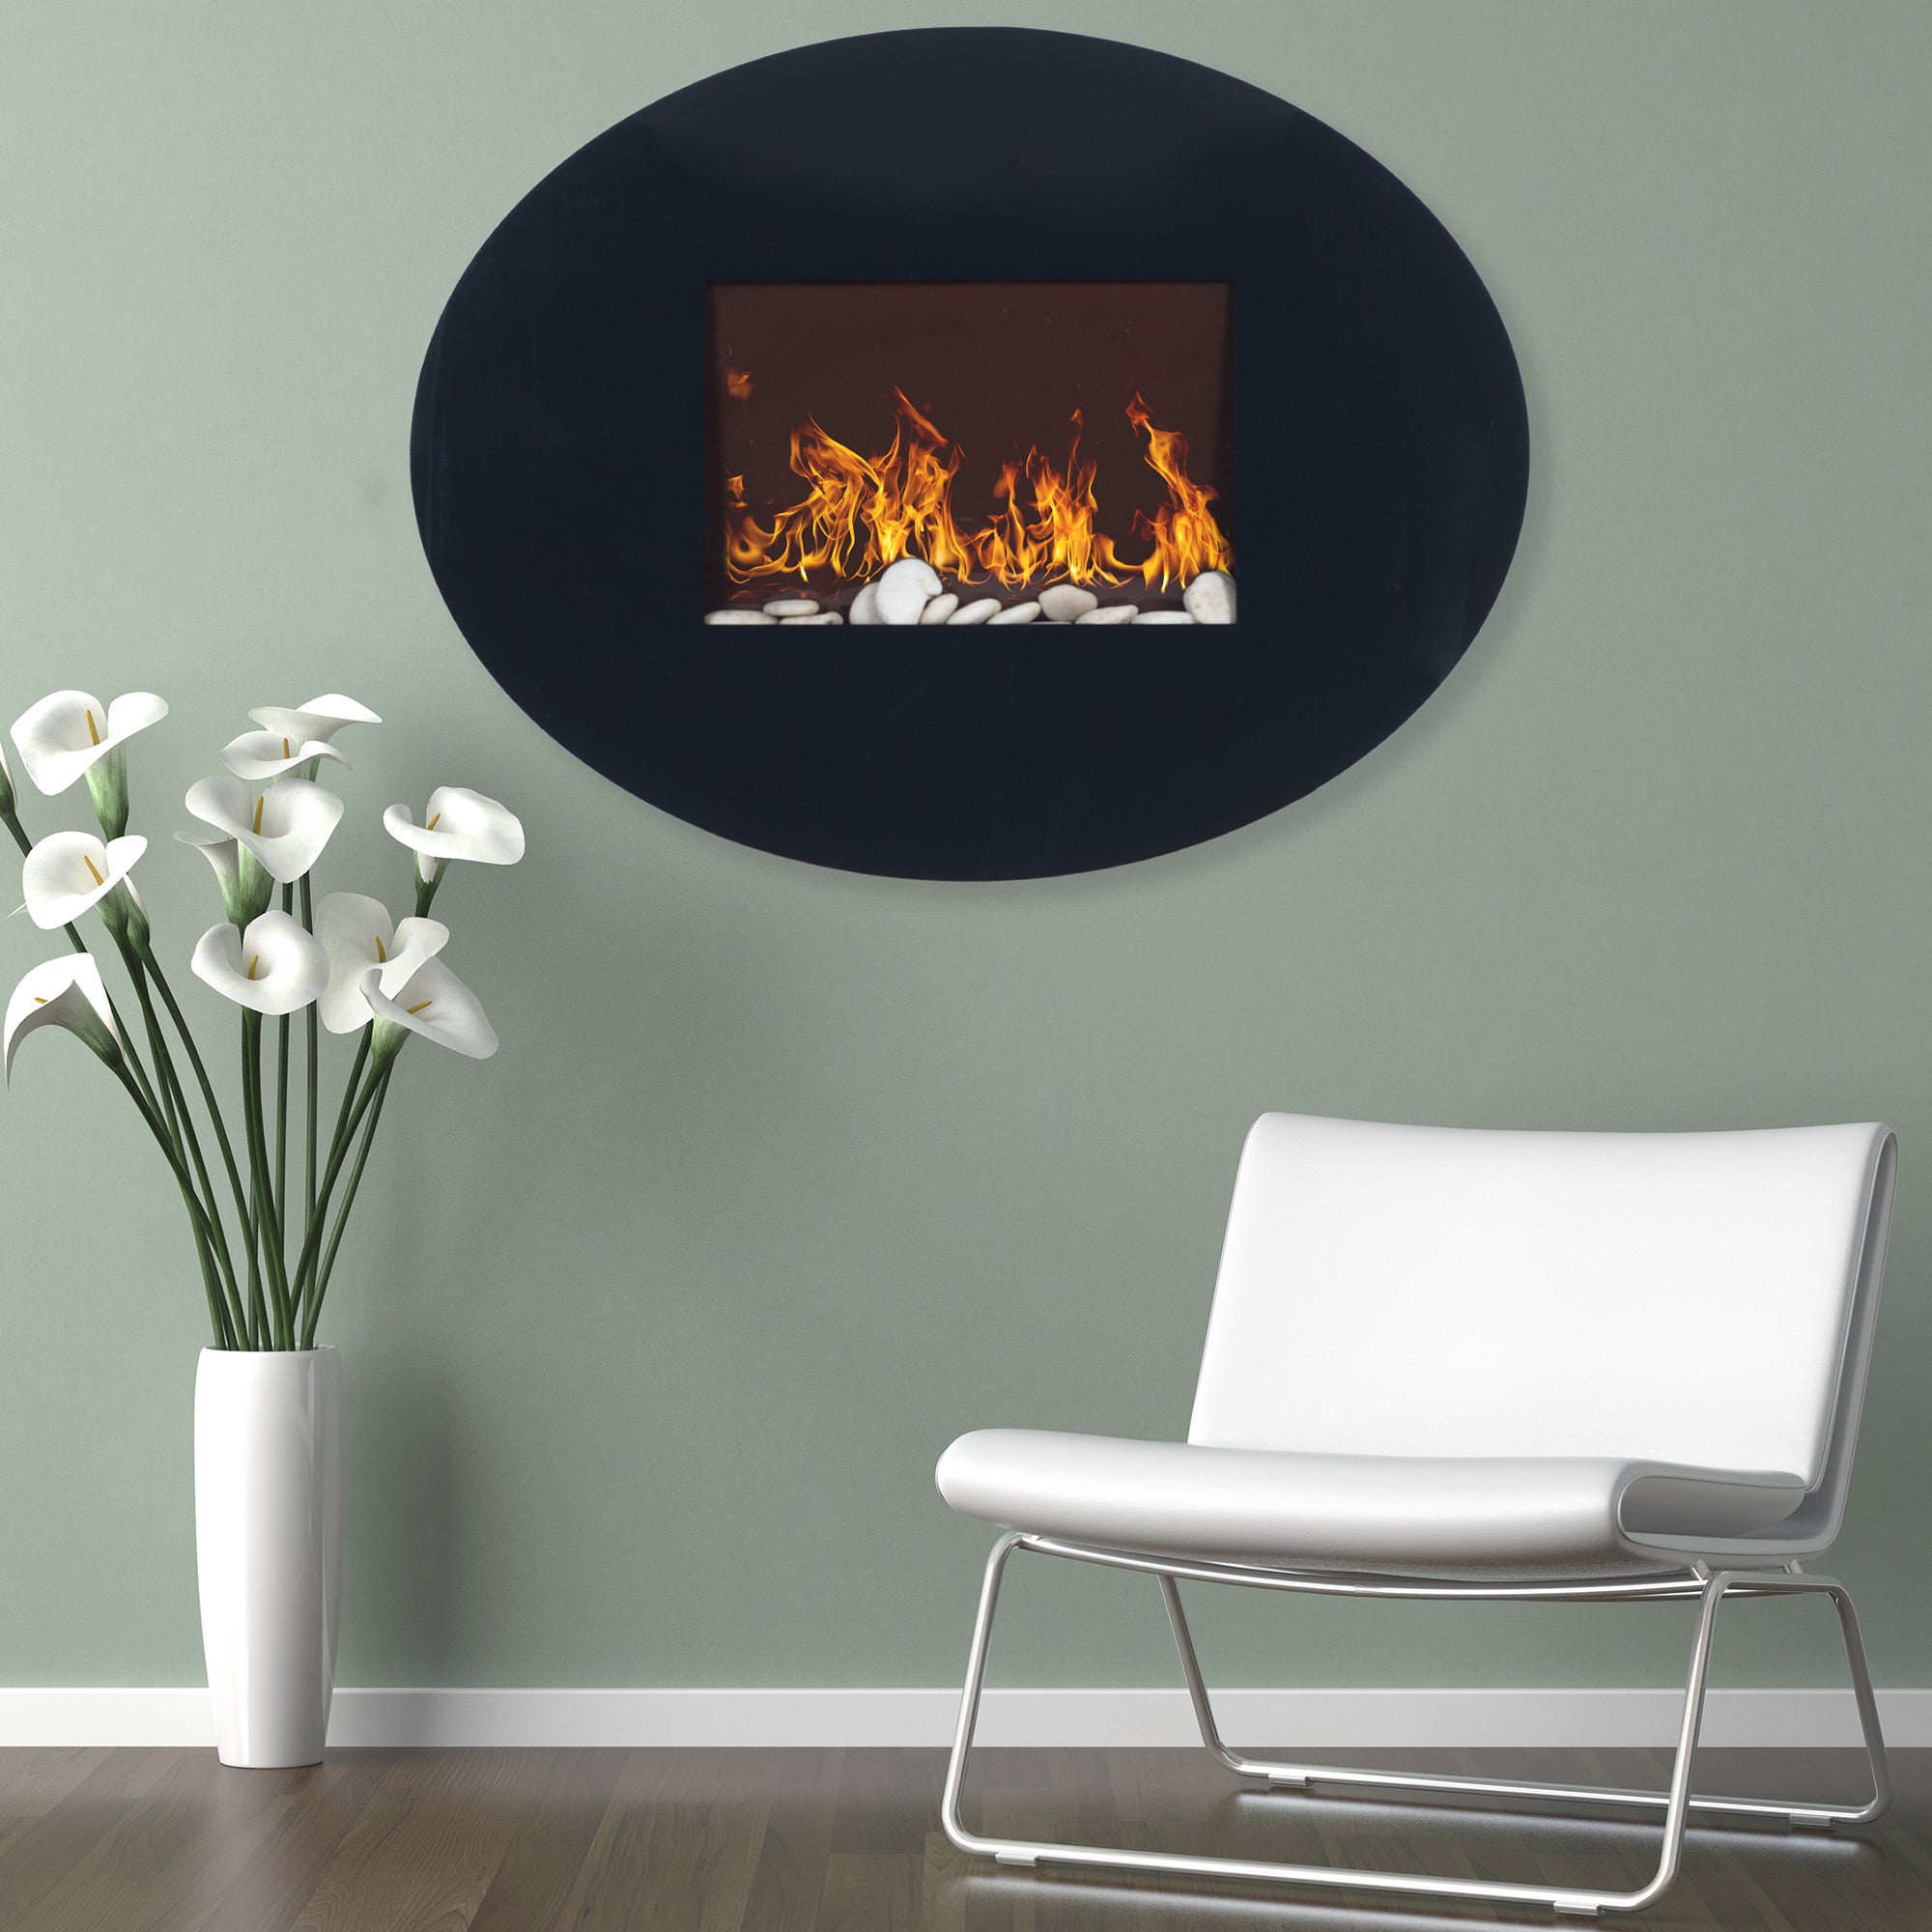 Northwest Black Oval Glass Panel Electric Fireplace with ...